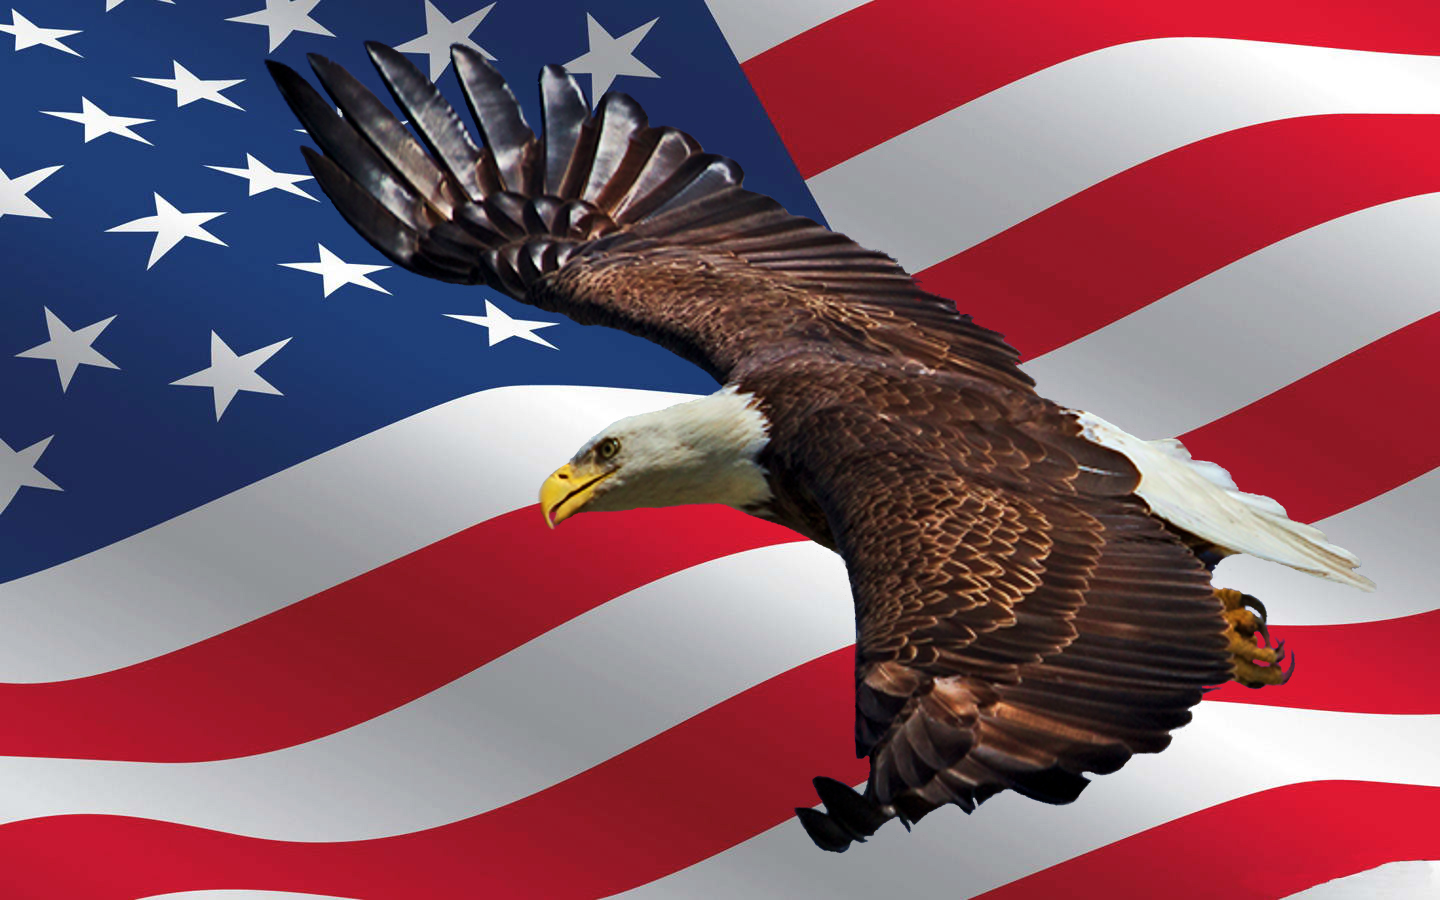 Bring back the true SPIRIT OF AMERICA before it is too late..